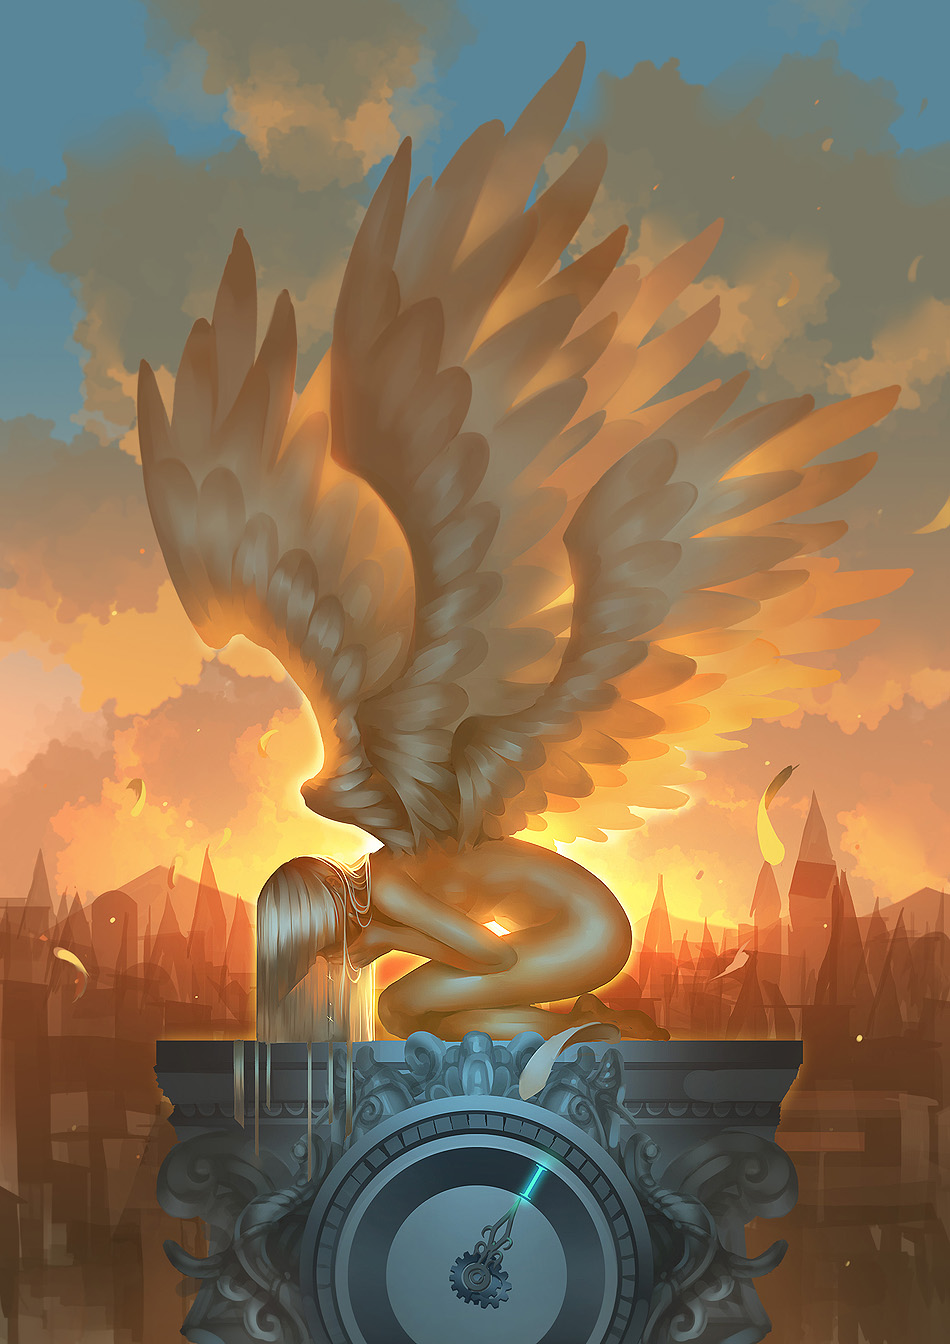 1girl angel bangs blunt_bangs city cityscape clock clock_tower clouds cloudy_sky crying feathers hands_over_mouth highres kneeling long_hair madcocoon multiple_wings nude original roman_numerals sky solo sunset tower white_hair wings